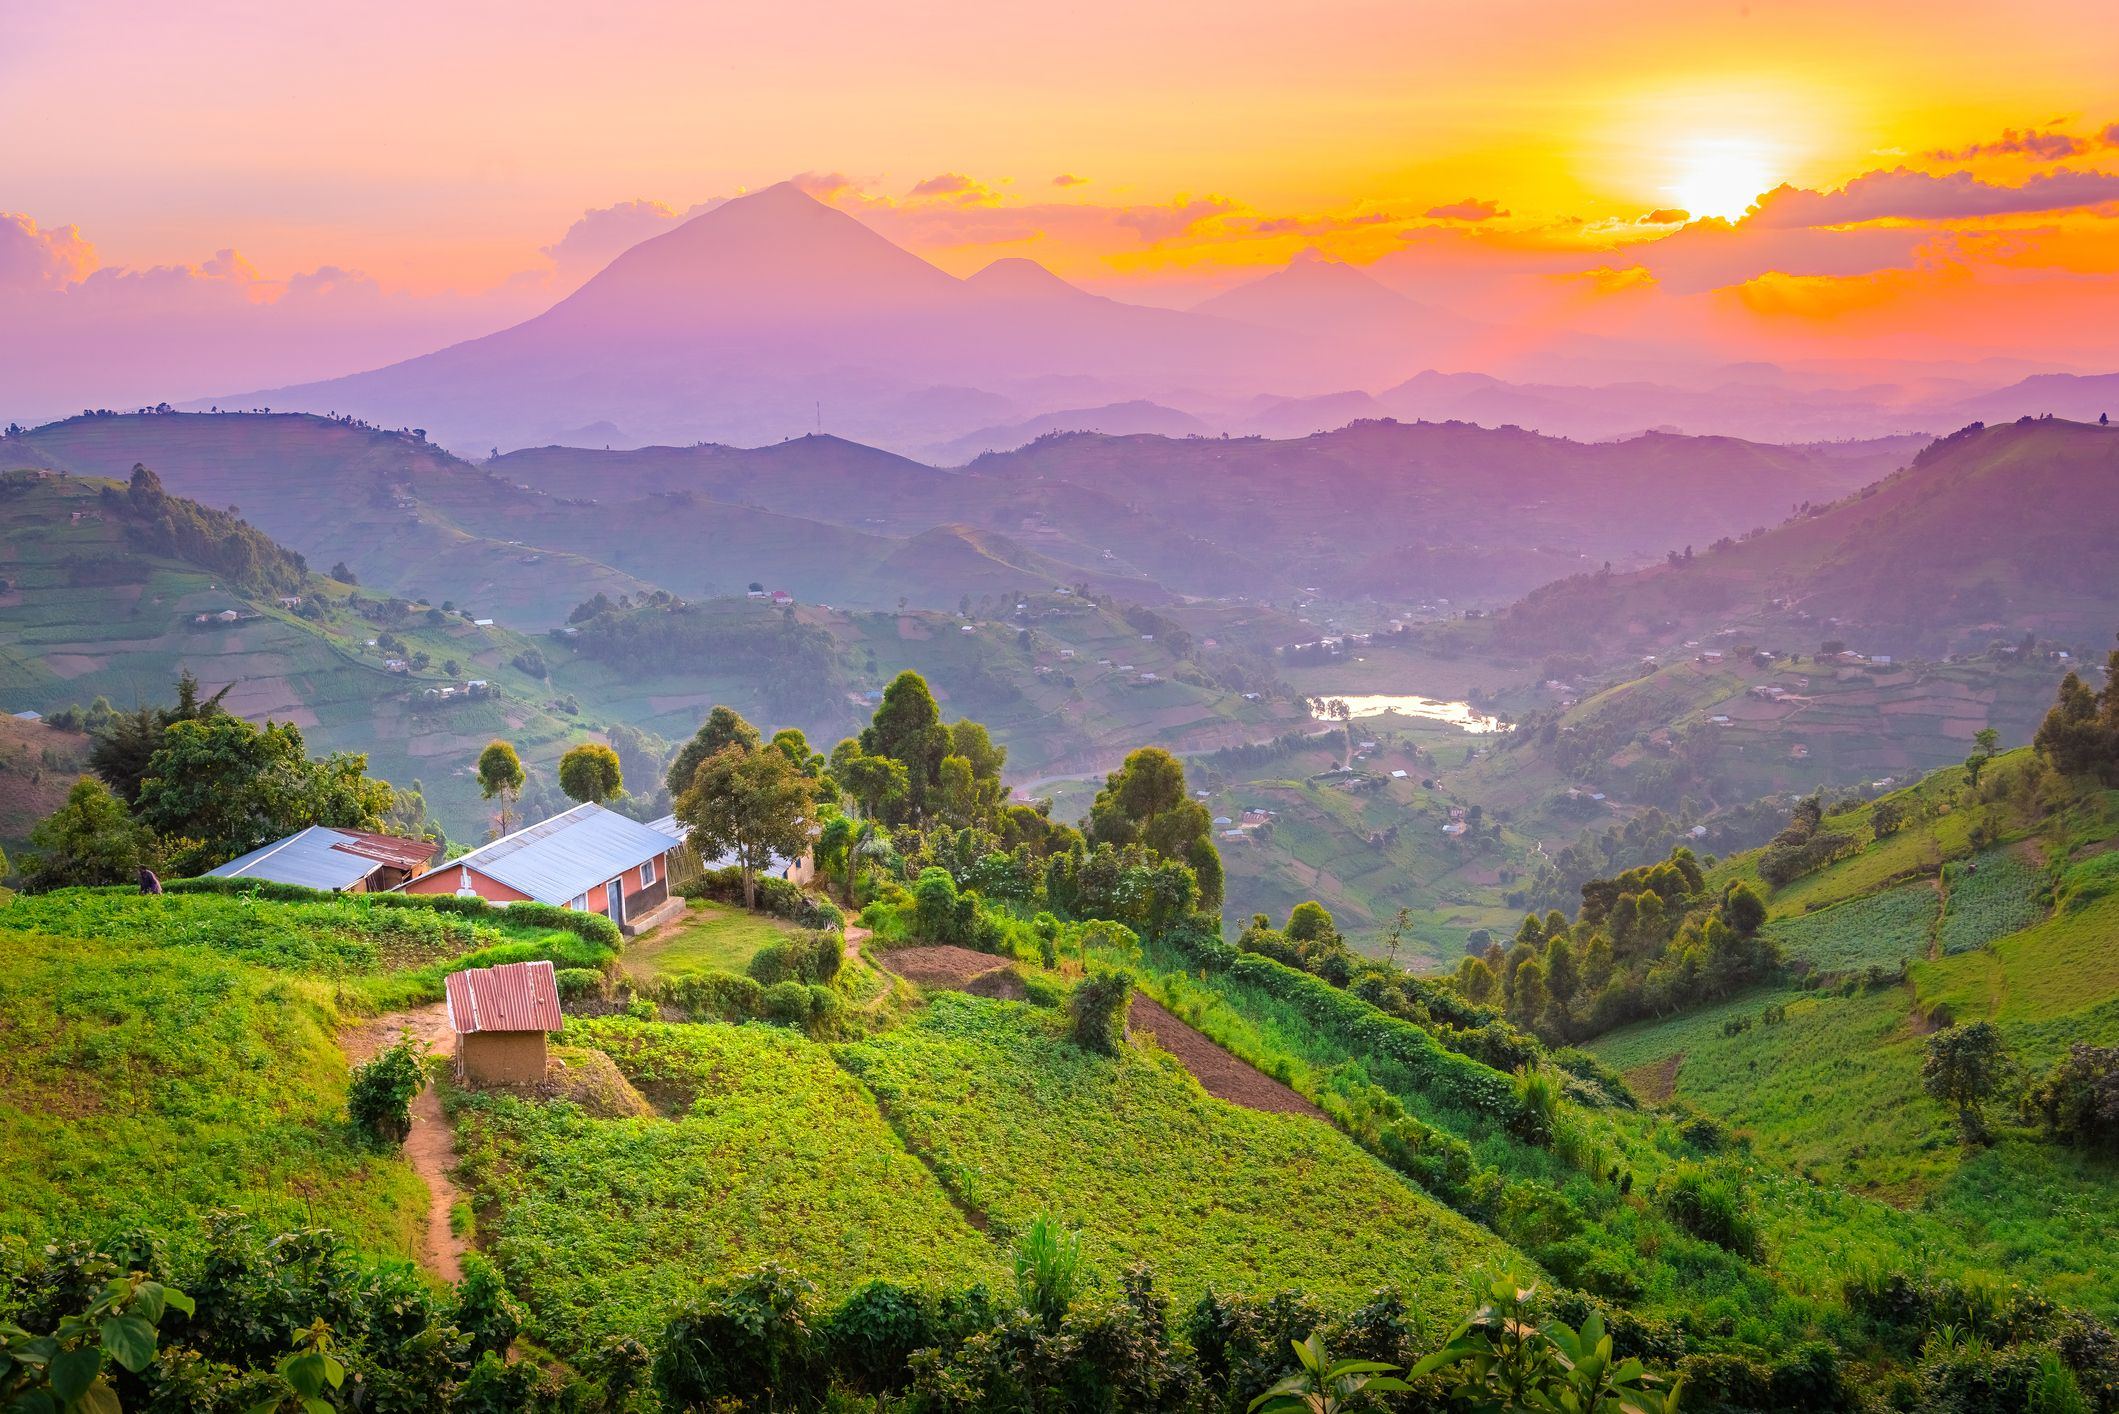 10 destinations to visit in 2020